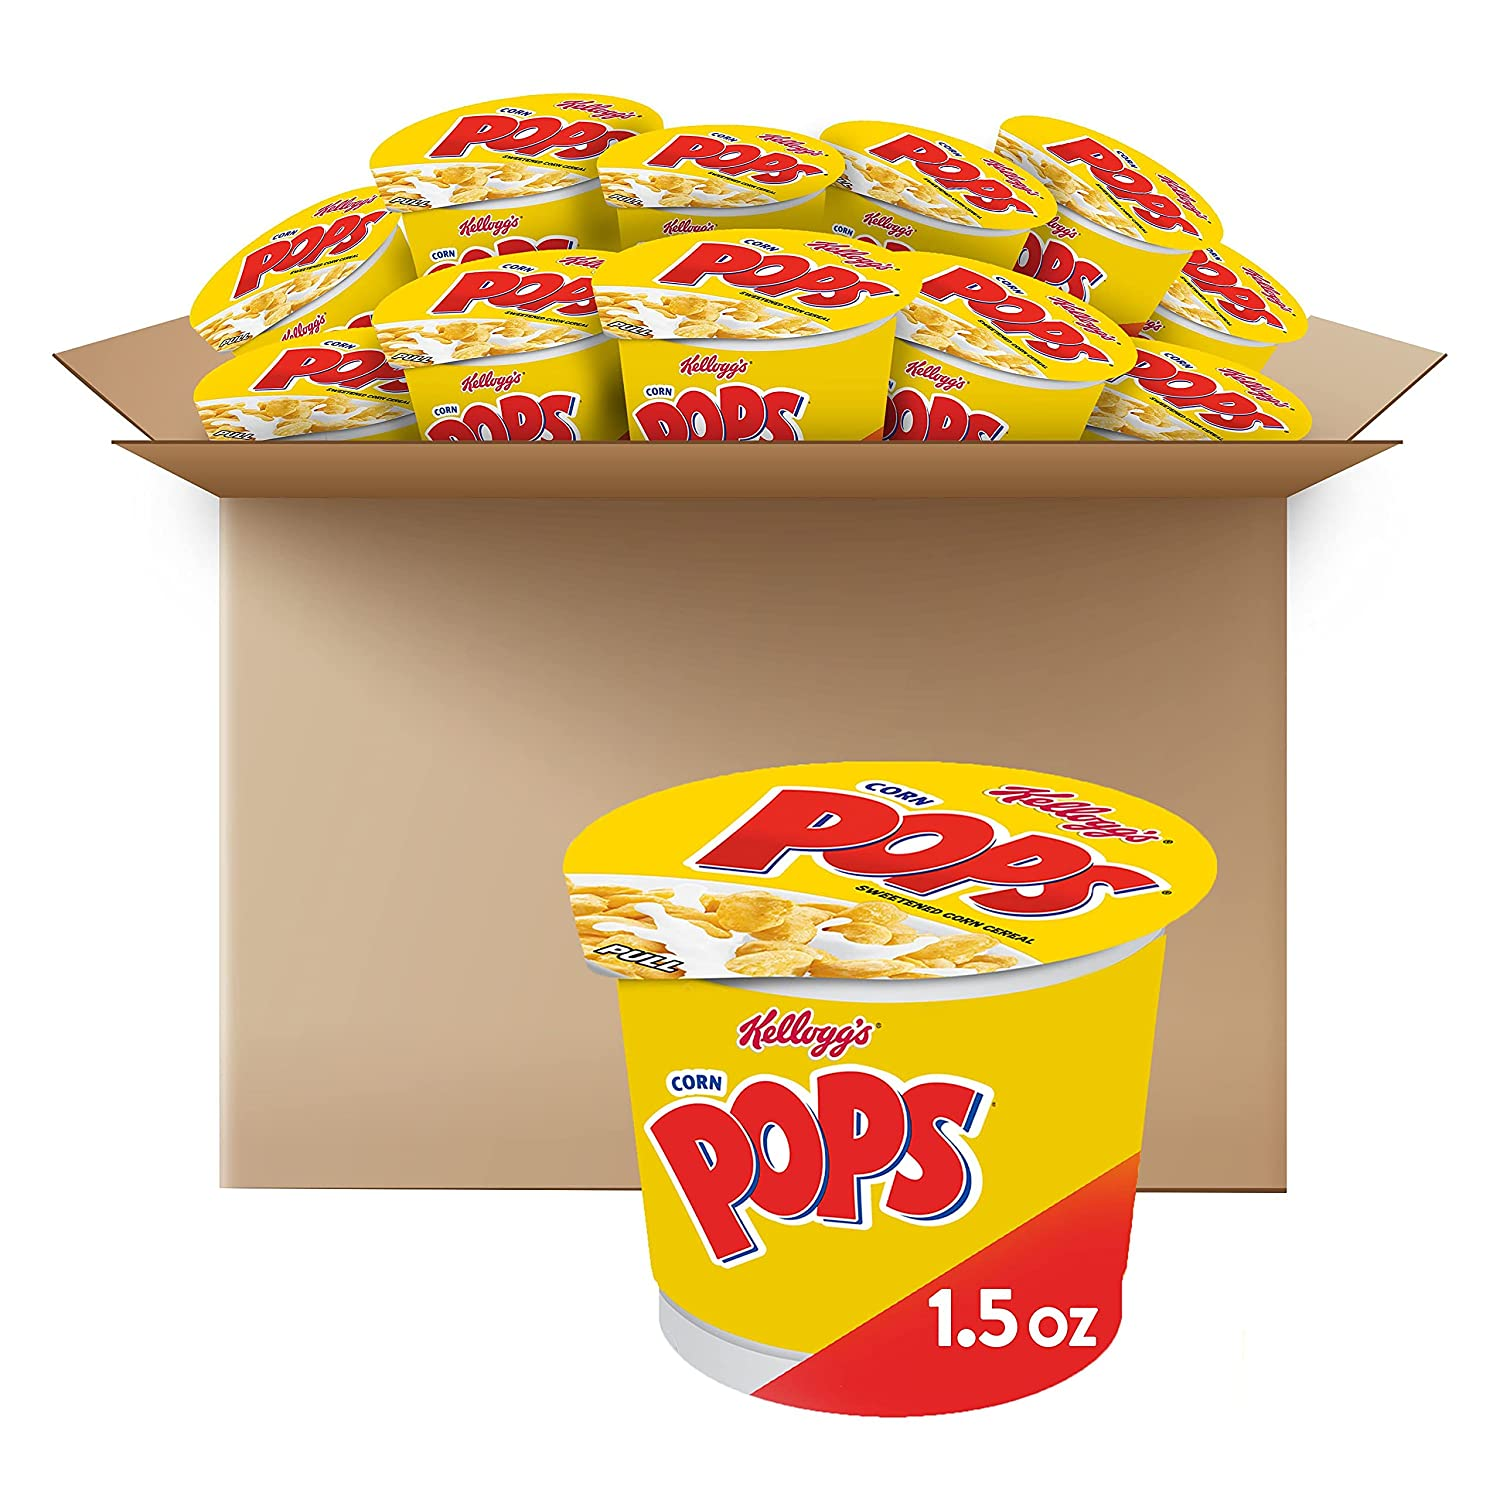 Kellogg's Corn Pops, Breakfast Cereal in a Cup, Bulk Size, 12 Count (Pack of 2, 9 oz Trays)